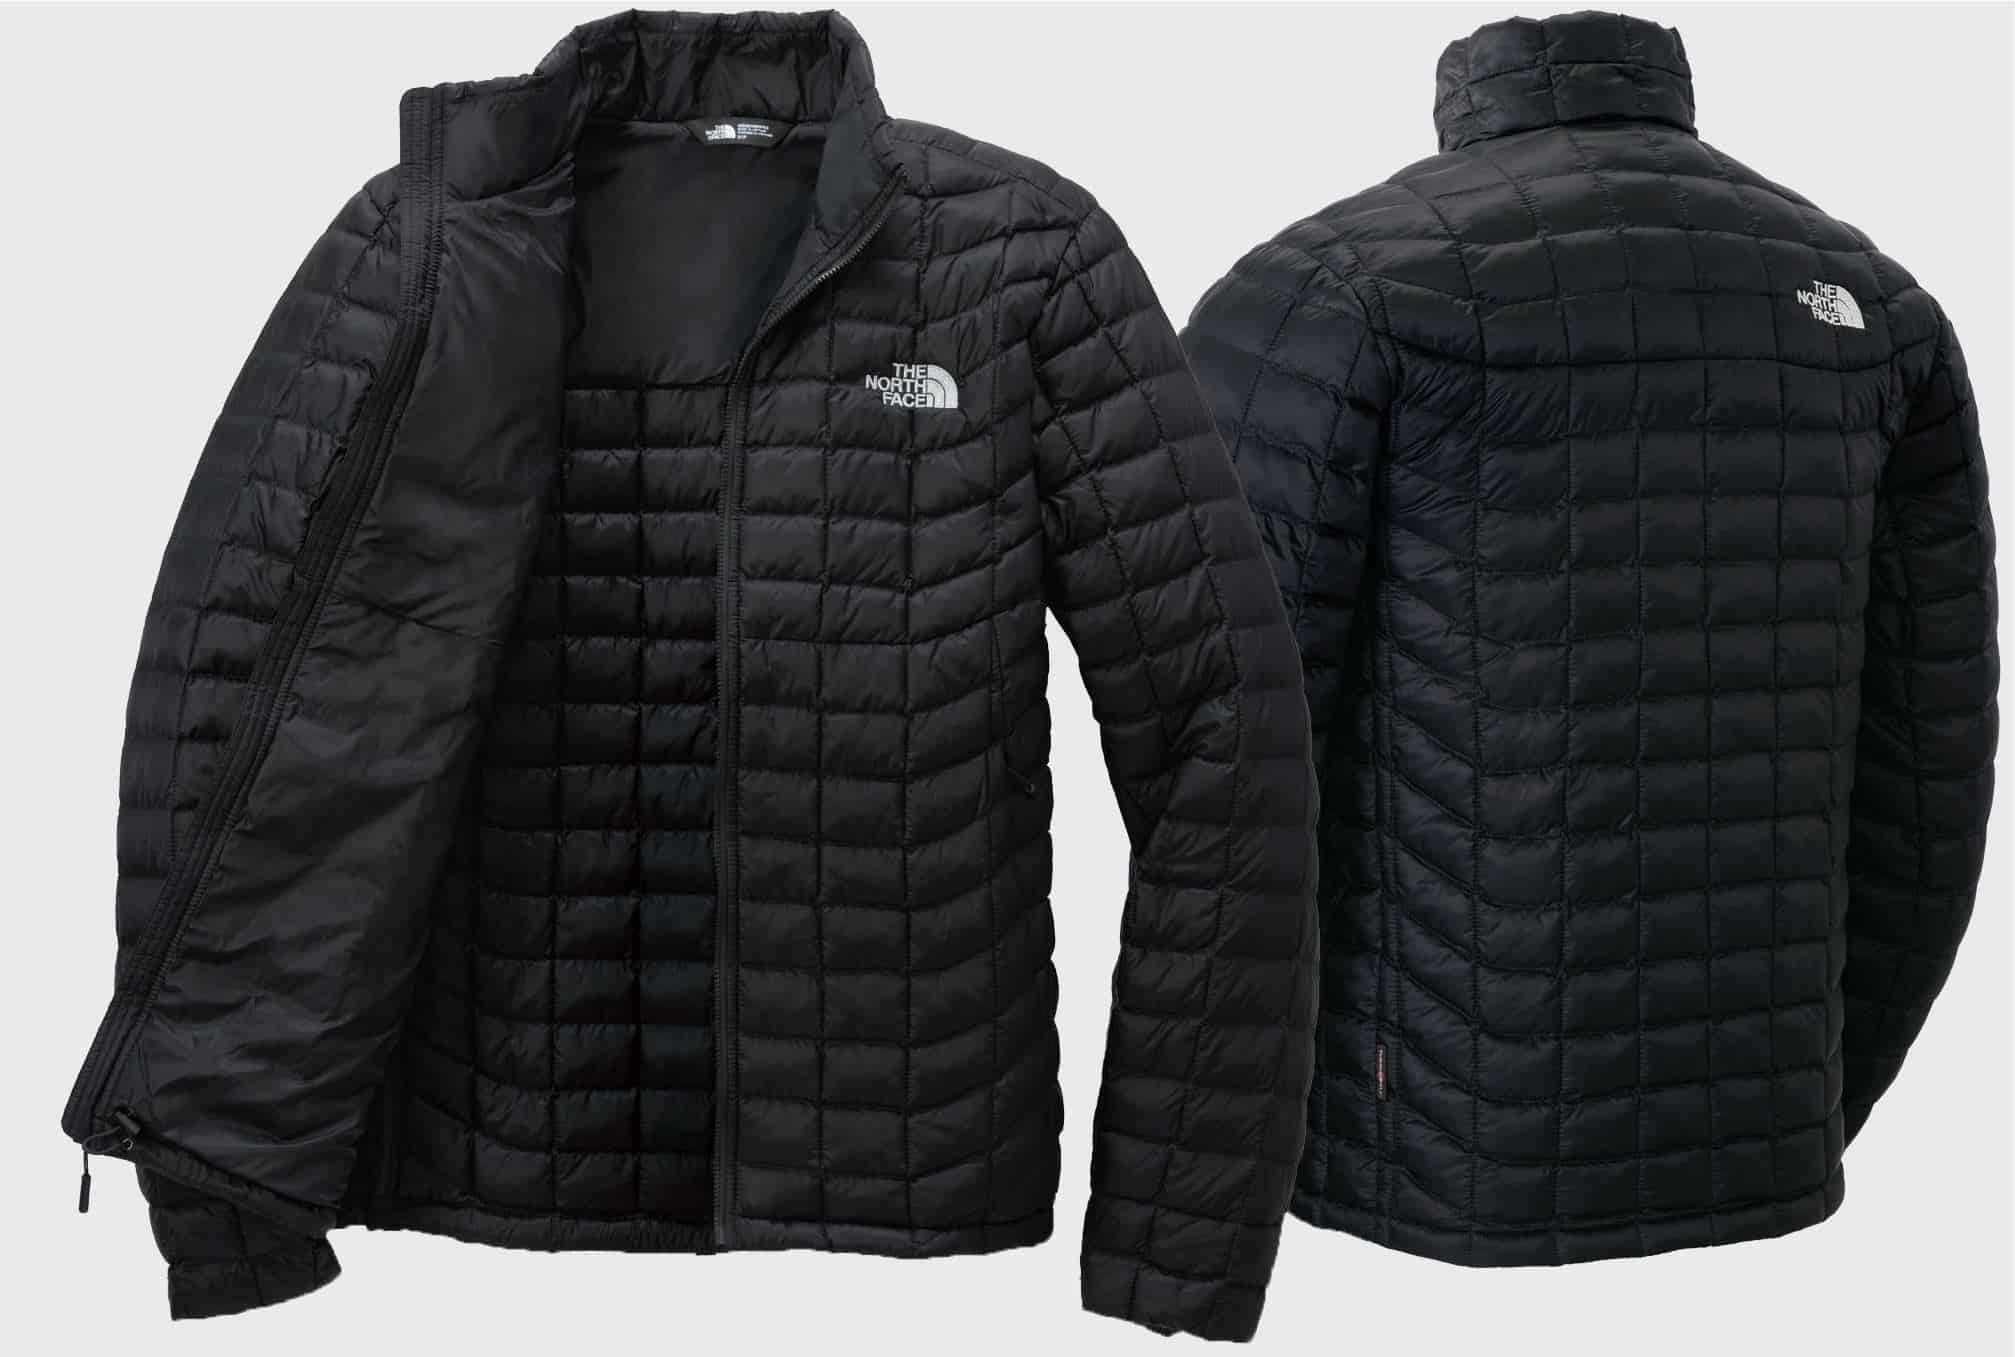 b25a8c1c5e Custom North Face Jackets | Custom Embroidered Jackets | Build Your ...